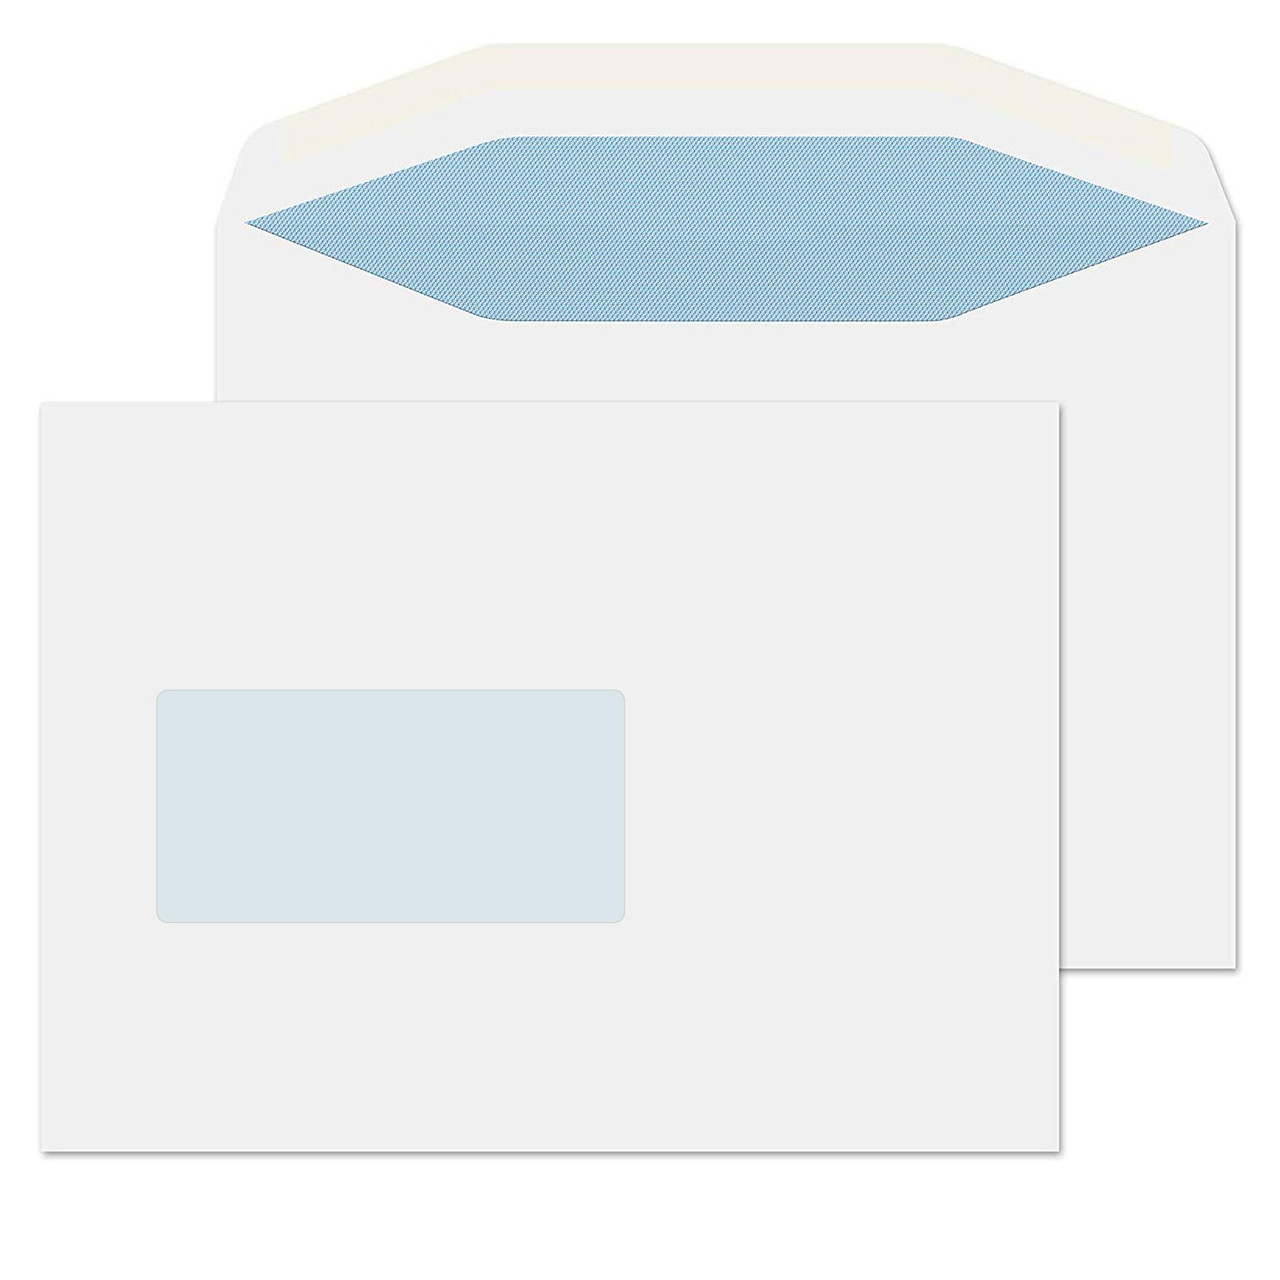 Folder Inserter Envelopes - EXTRA WIDE 238mm C5 Window - 1000pcs